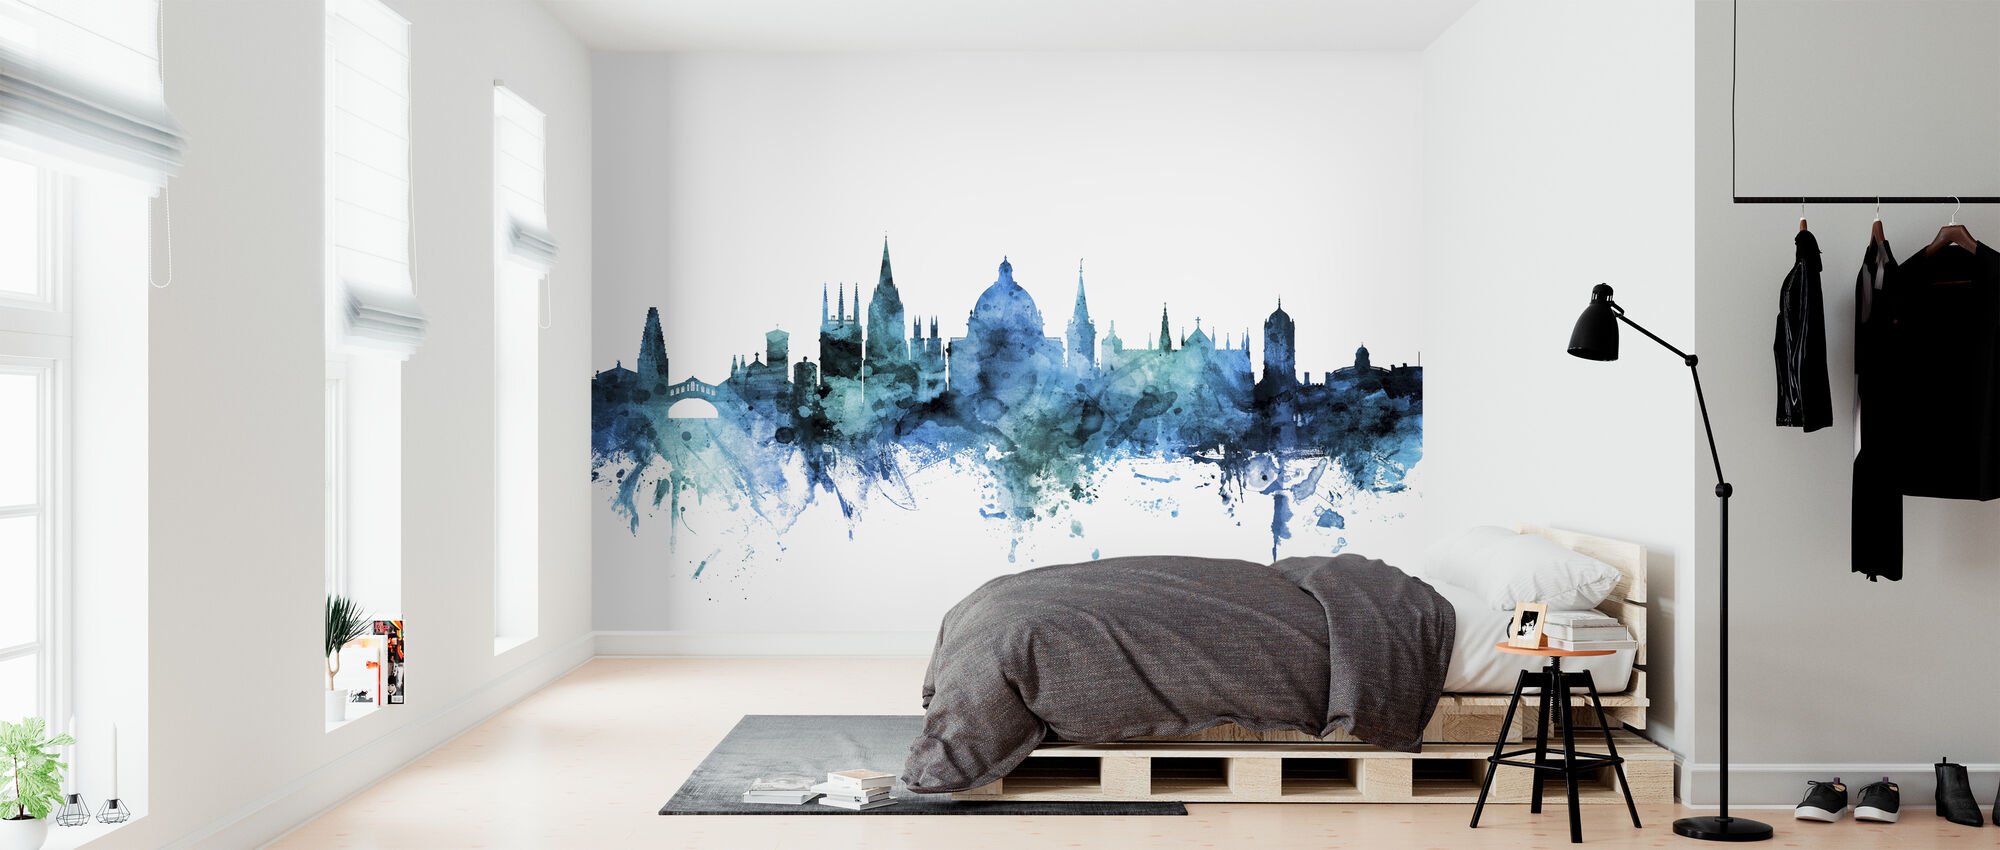 Oxford England Skyline - Wallpaper - Bedroom